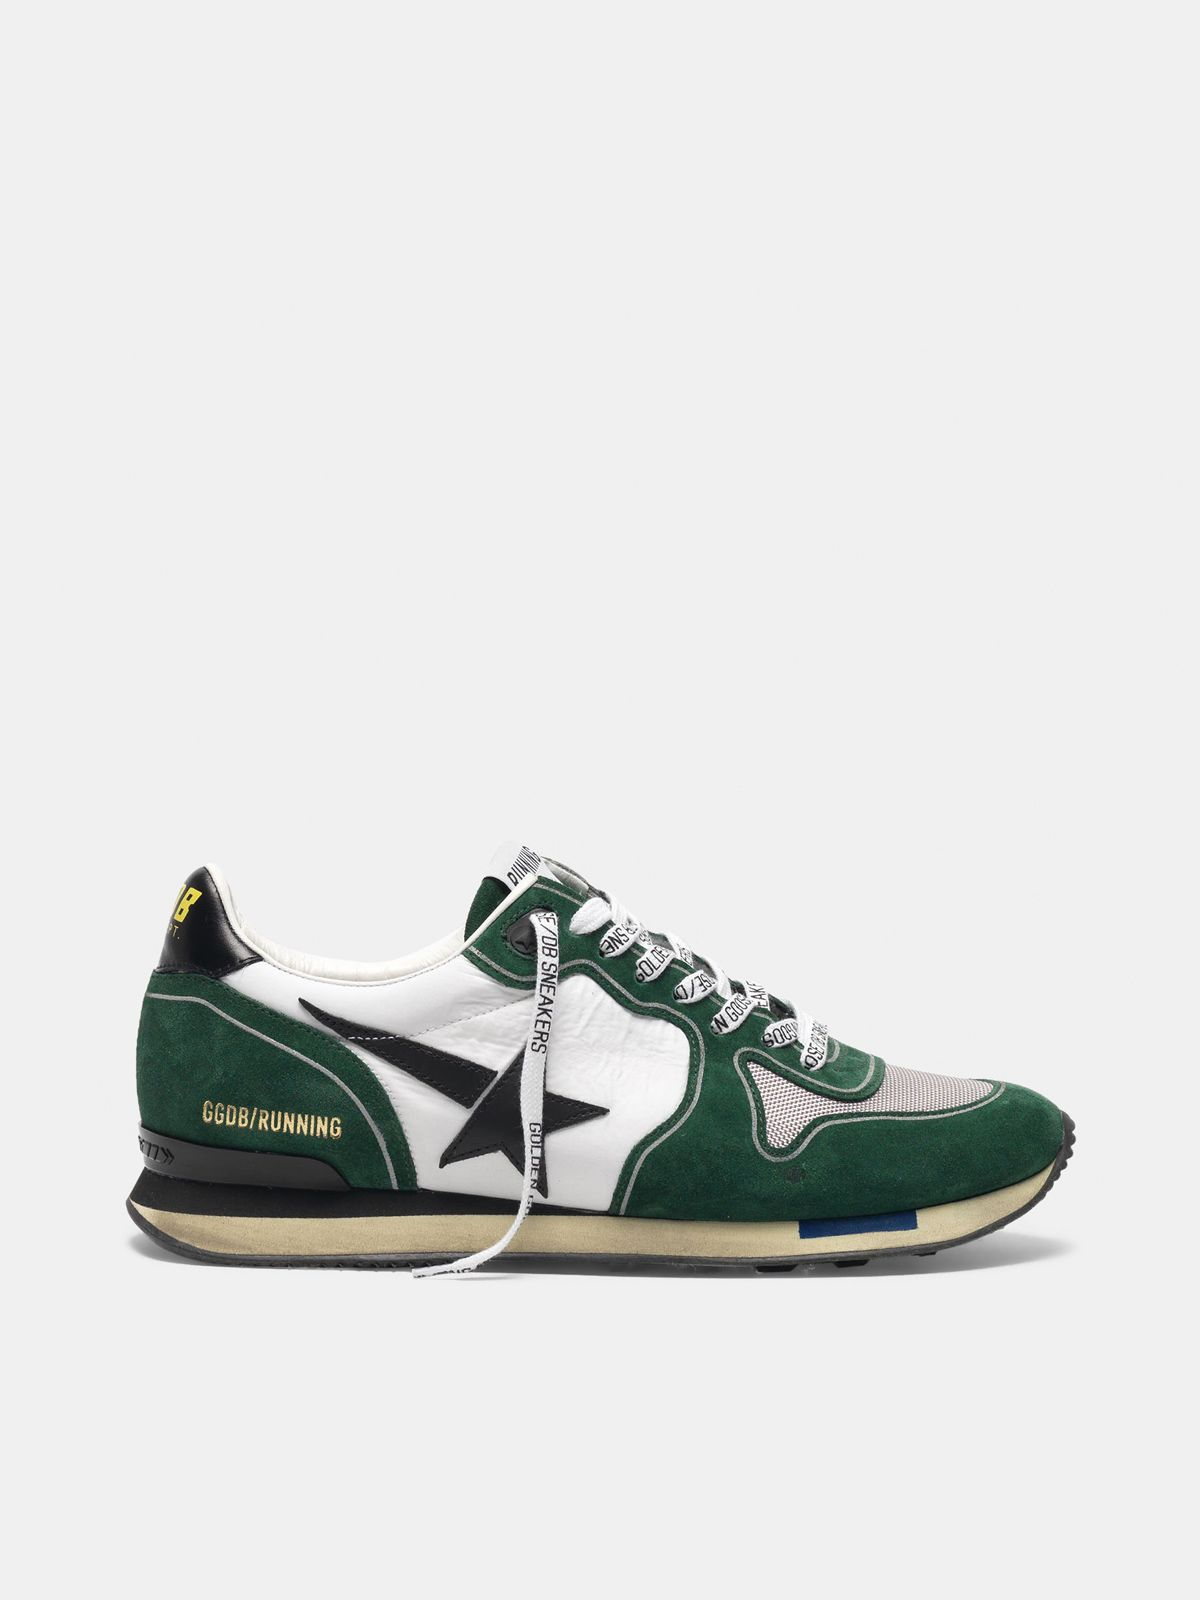 Golden Goose - White and green Running sneakers in suede in